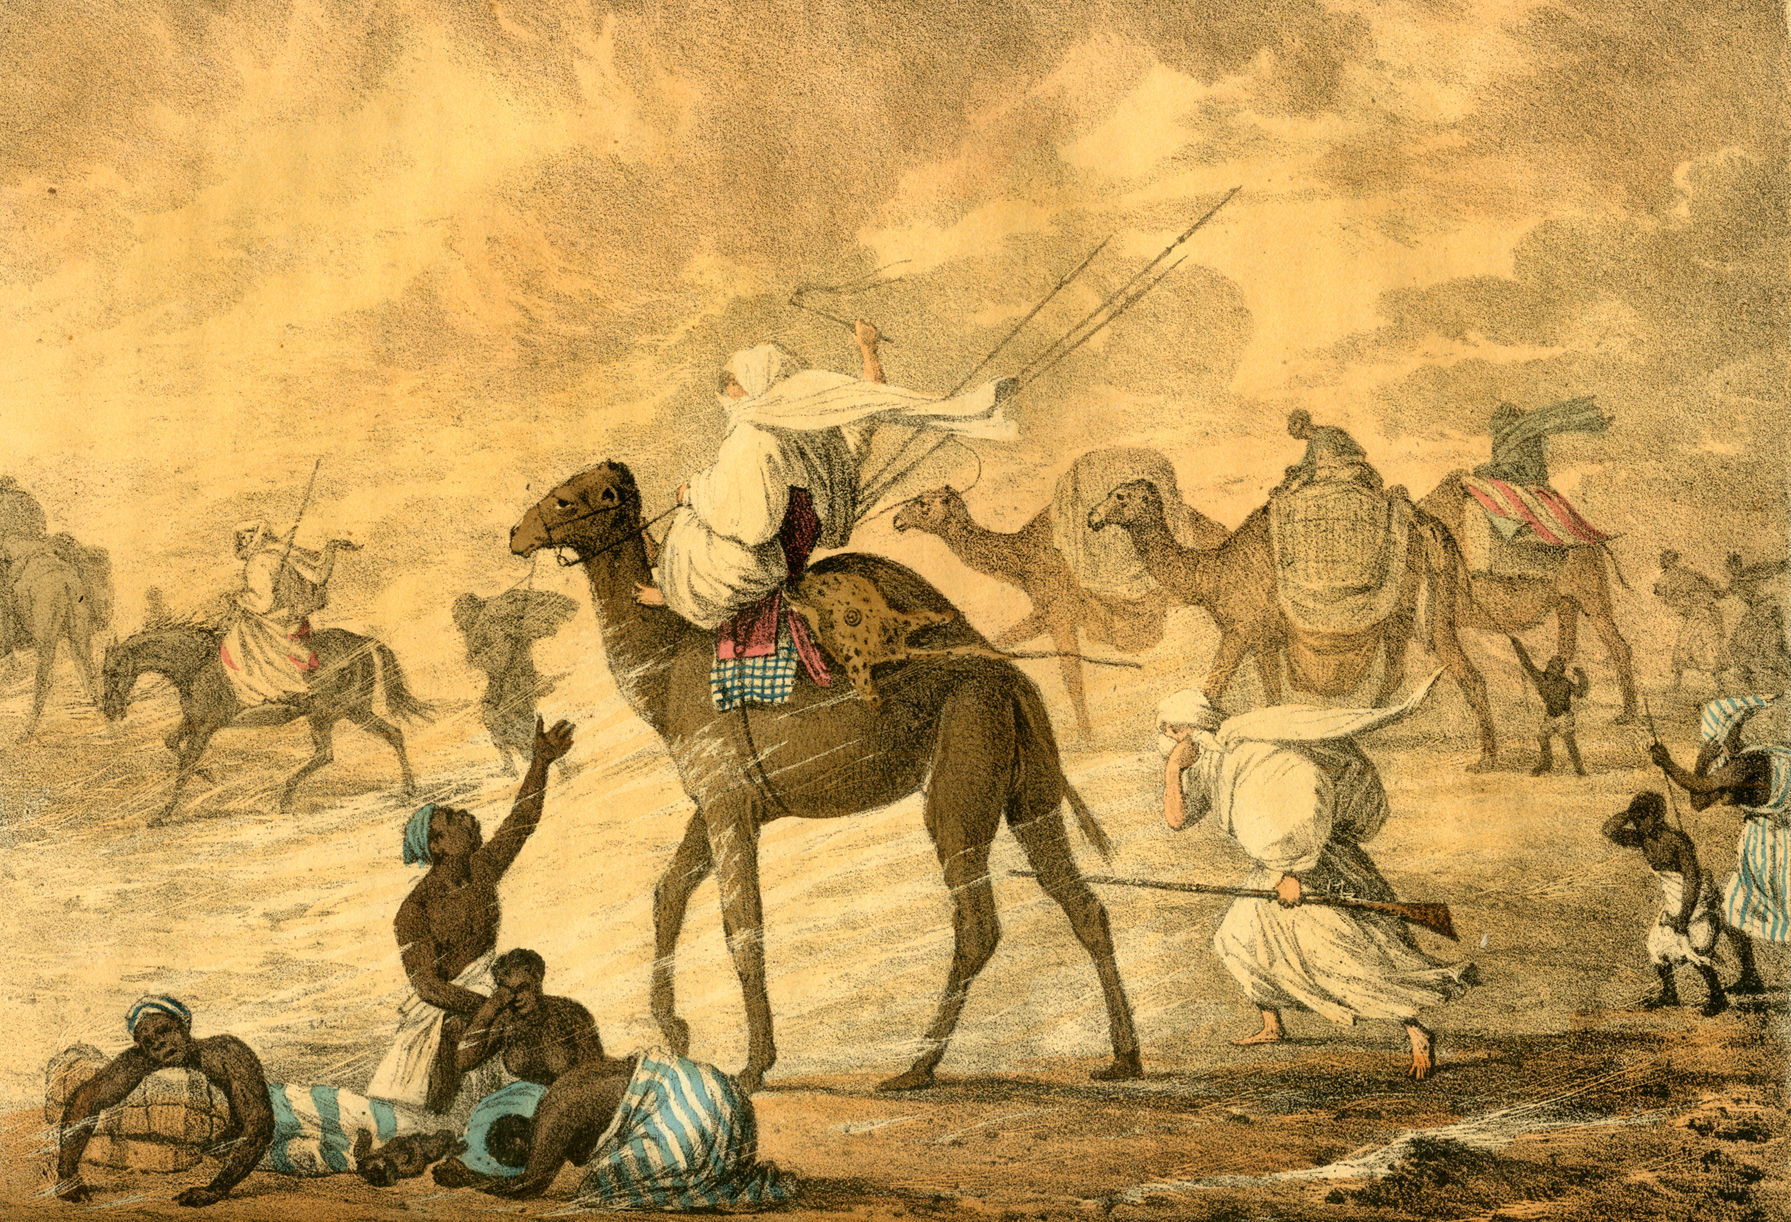 By George Francis Lyon (1795-1832) - Lyon (1821):A Narrative of Travels in North Africa in the years 1818, 1819, and 1820, accompanied by Geographical Notices of Soudan and of the Course of the Niger., Public Domain, https://commons.wikimedia.org/w/index.php?curid=25025857